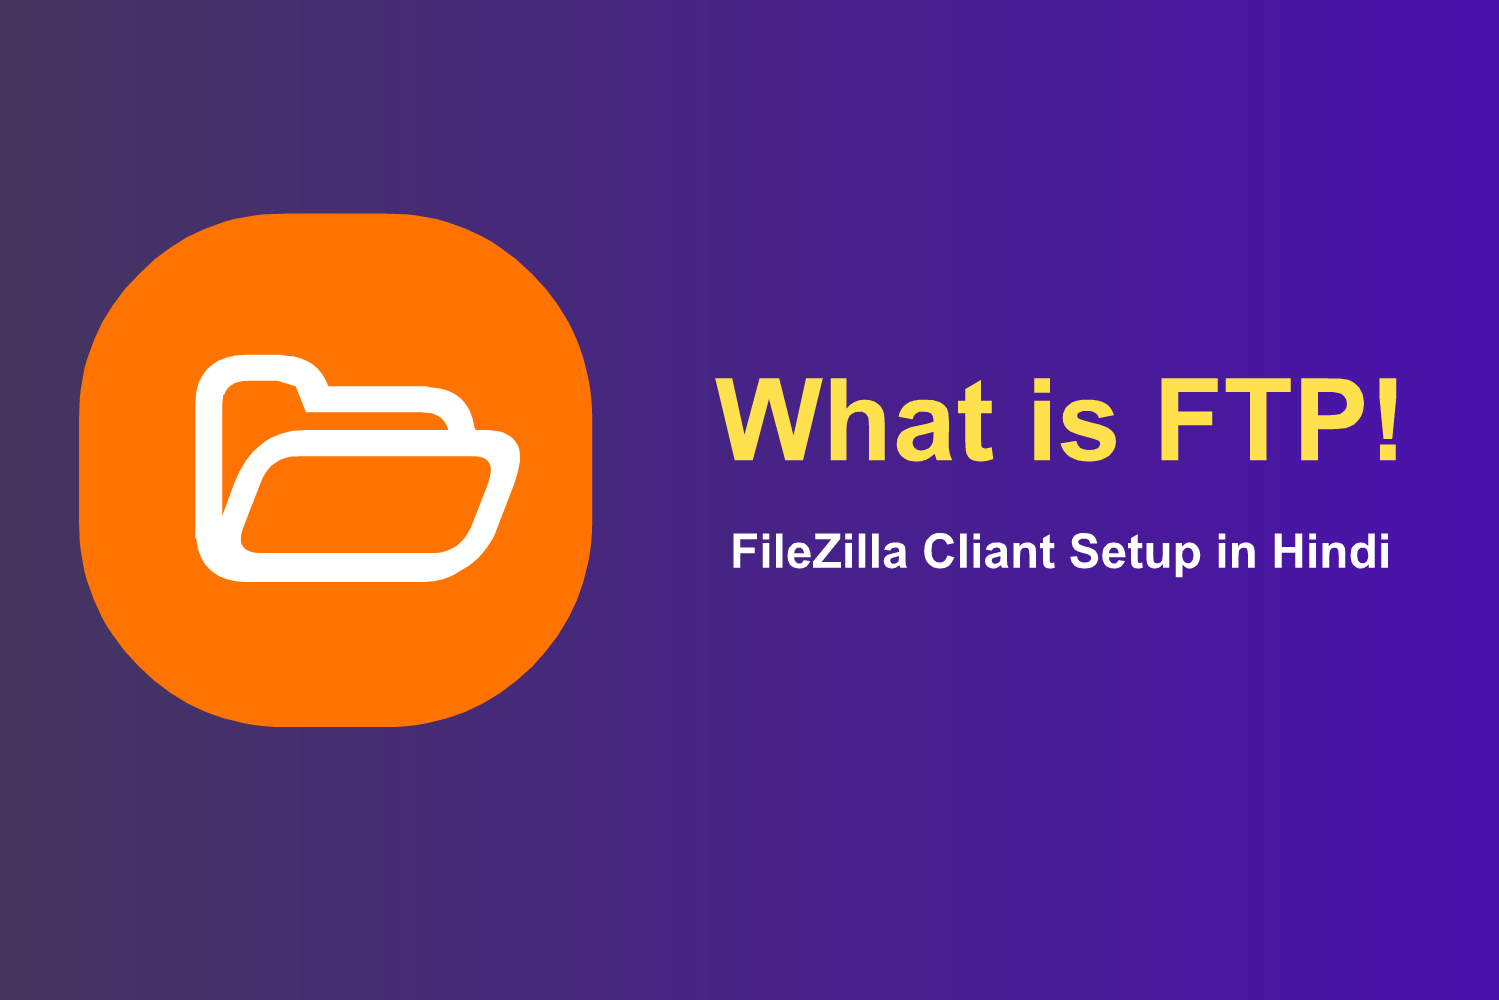 Filezilla Software Setup In Hindi